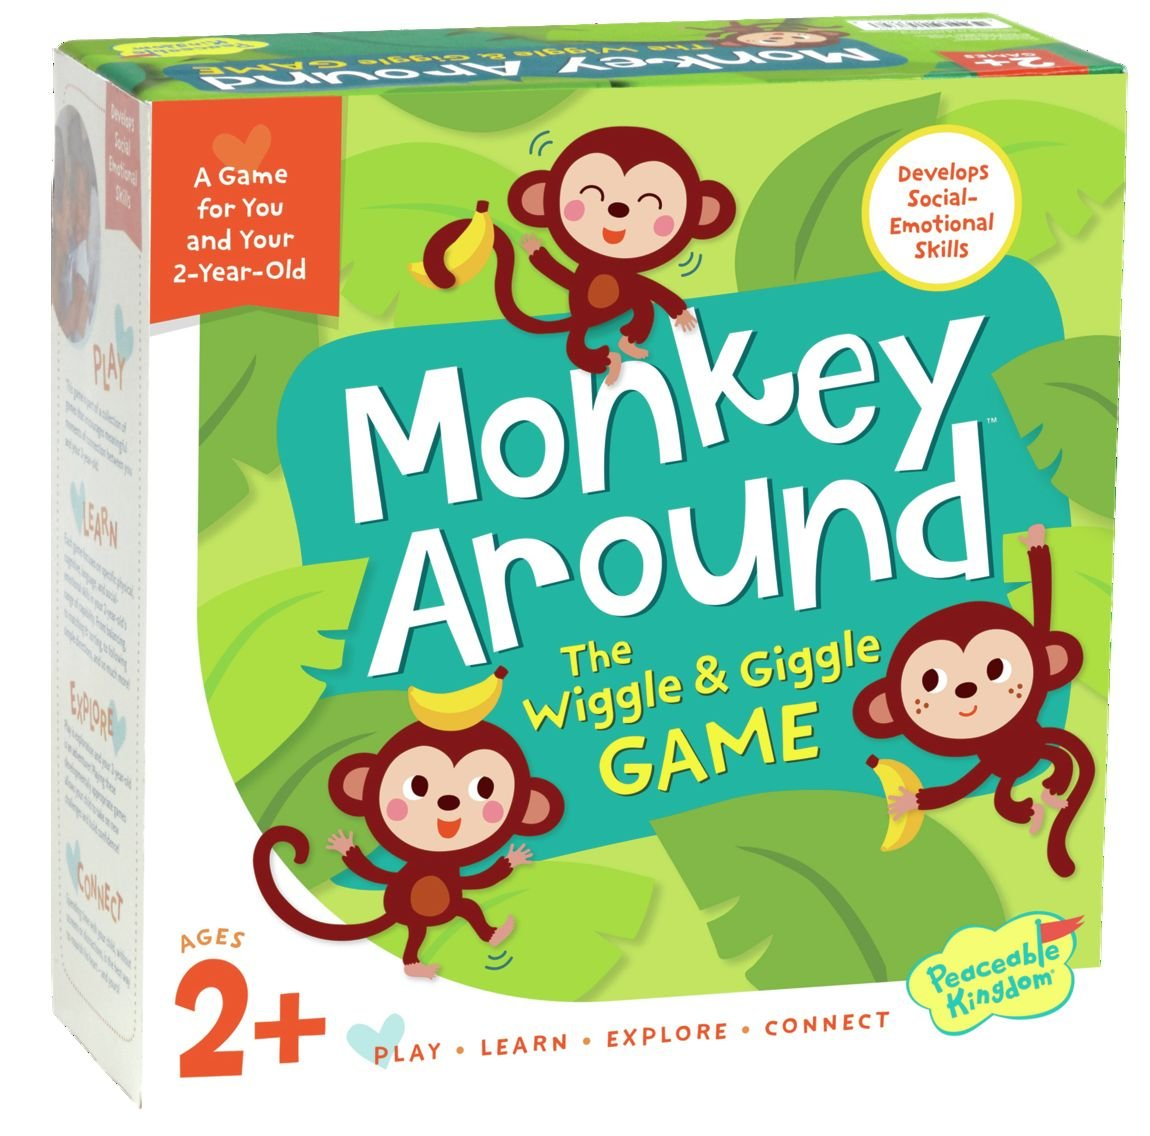 The Wiggle & Giggle Game for 2-Yr-Olds